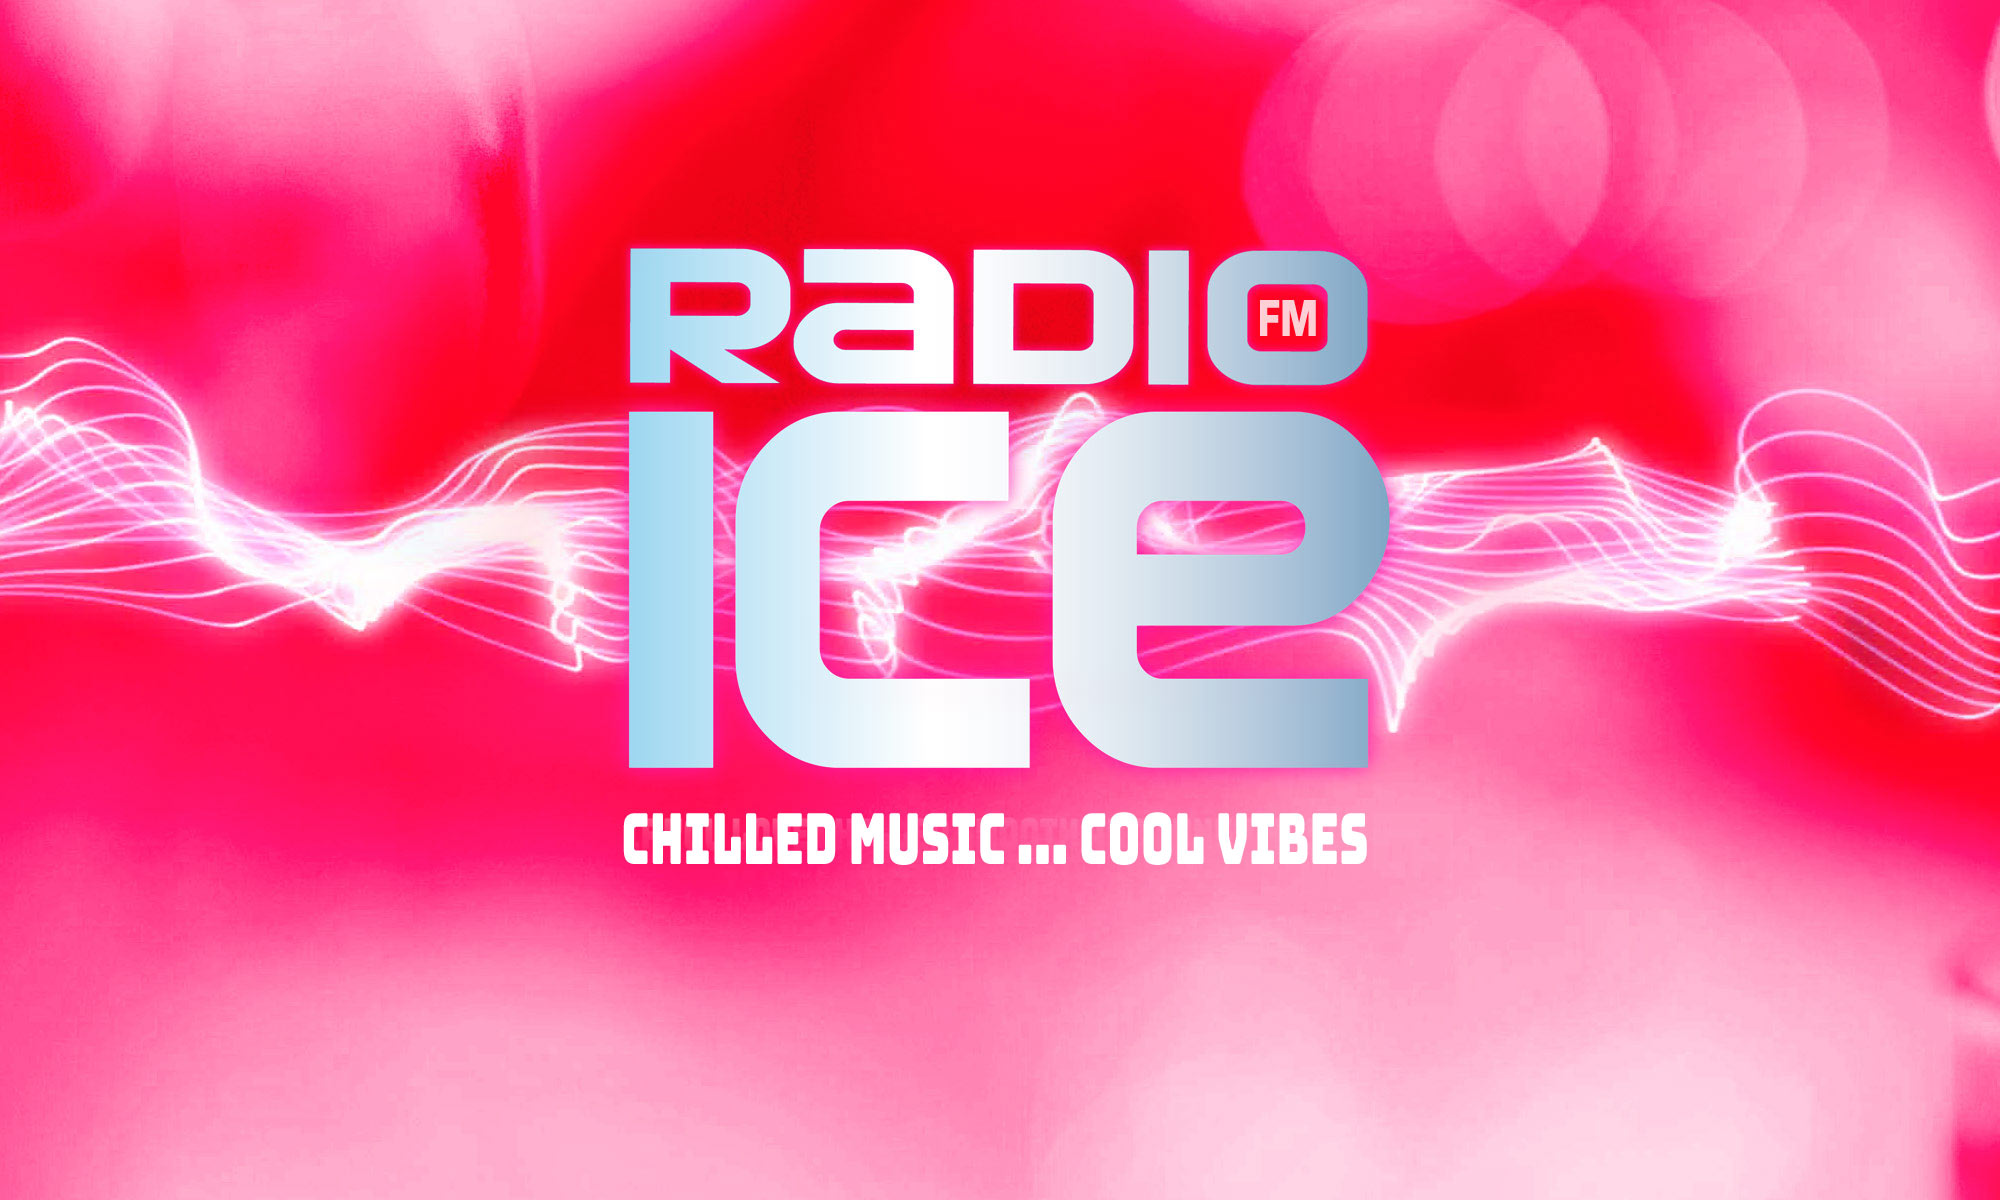 Contact Radio Ice FM